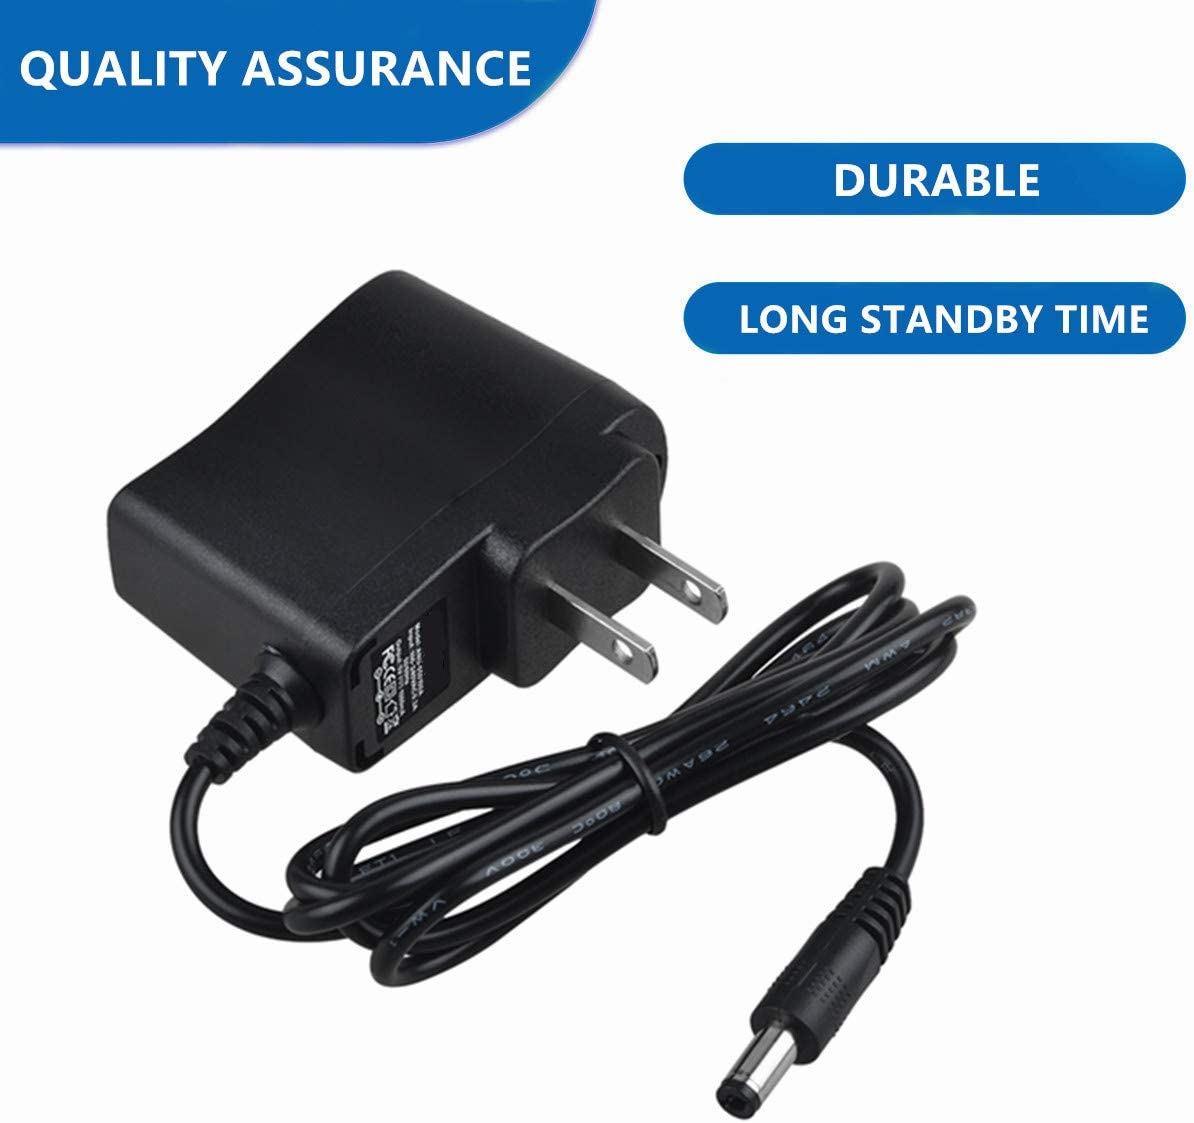 Splitter Fits 110v BC12V300 5.5mm 180NCP 1900NCP Accessory USA AC Adapter for DOGTRA Charger